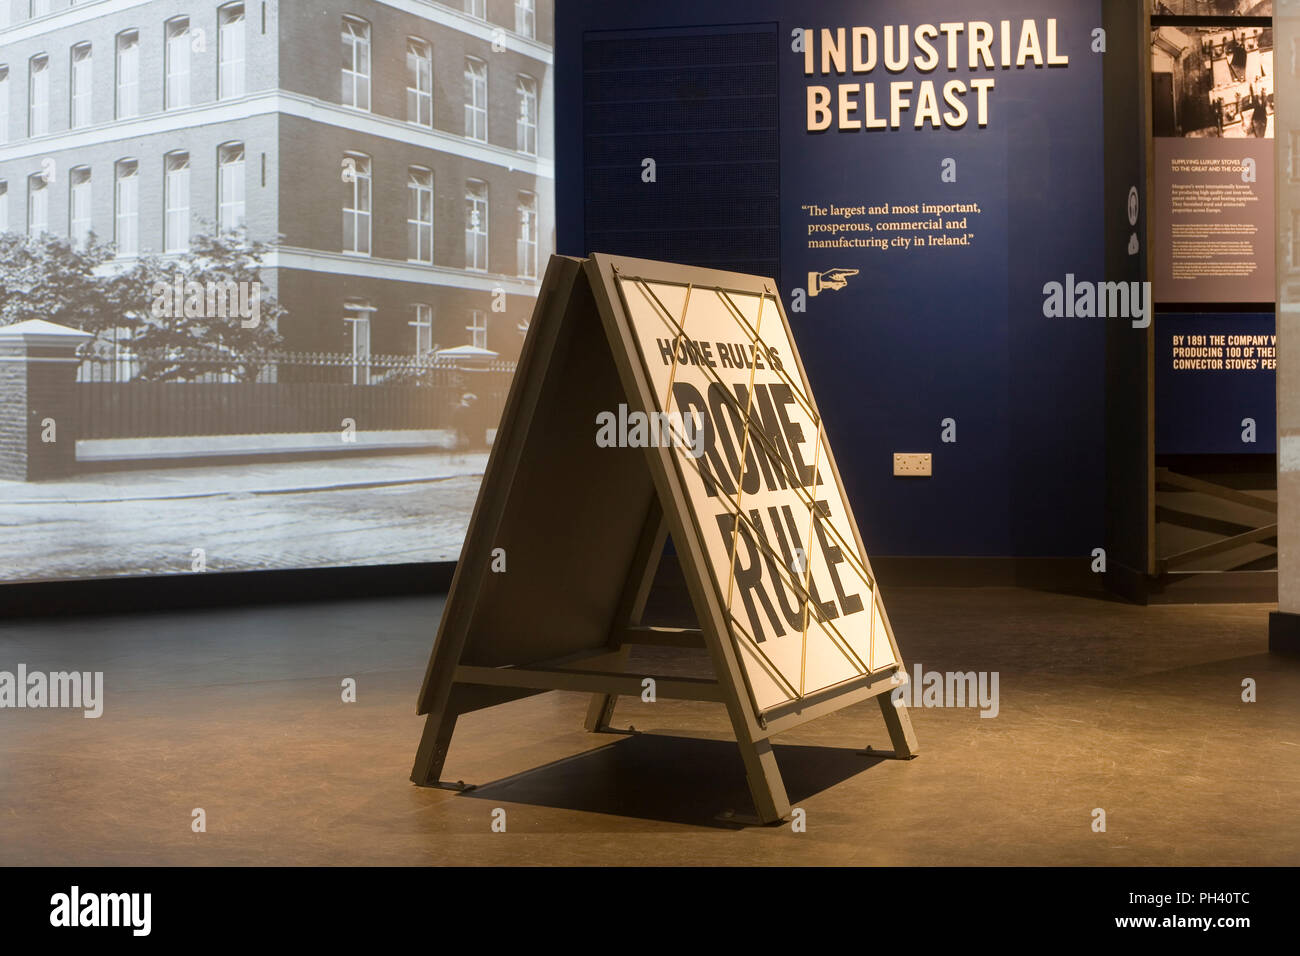 Sign suggesting that home rule (from Dublin) would equate to rule from Rome in Belfast history section of Titanic exhibition - Stock Image